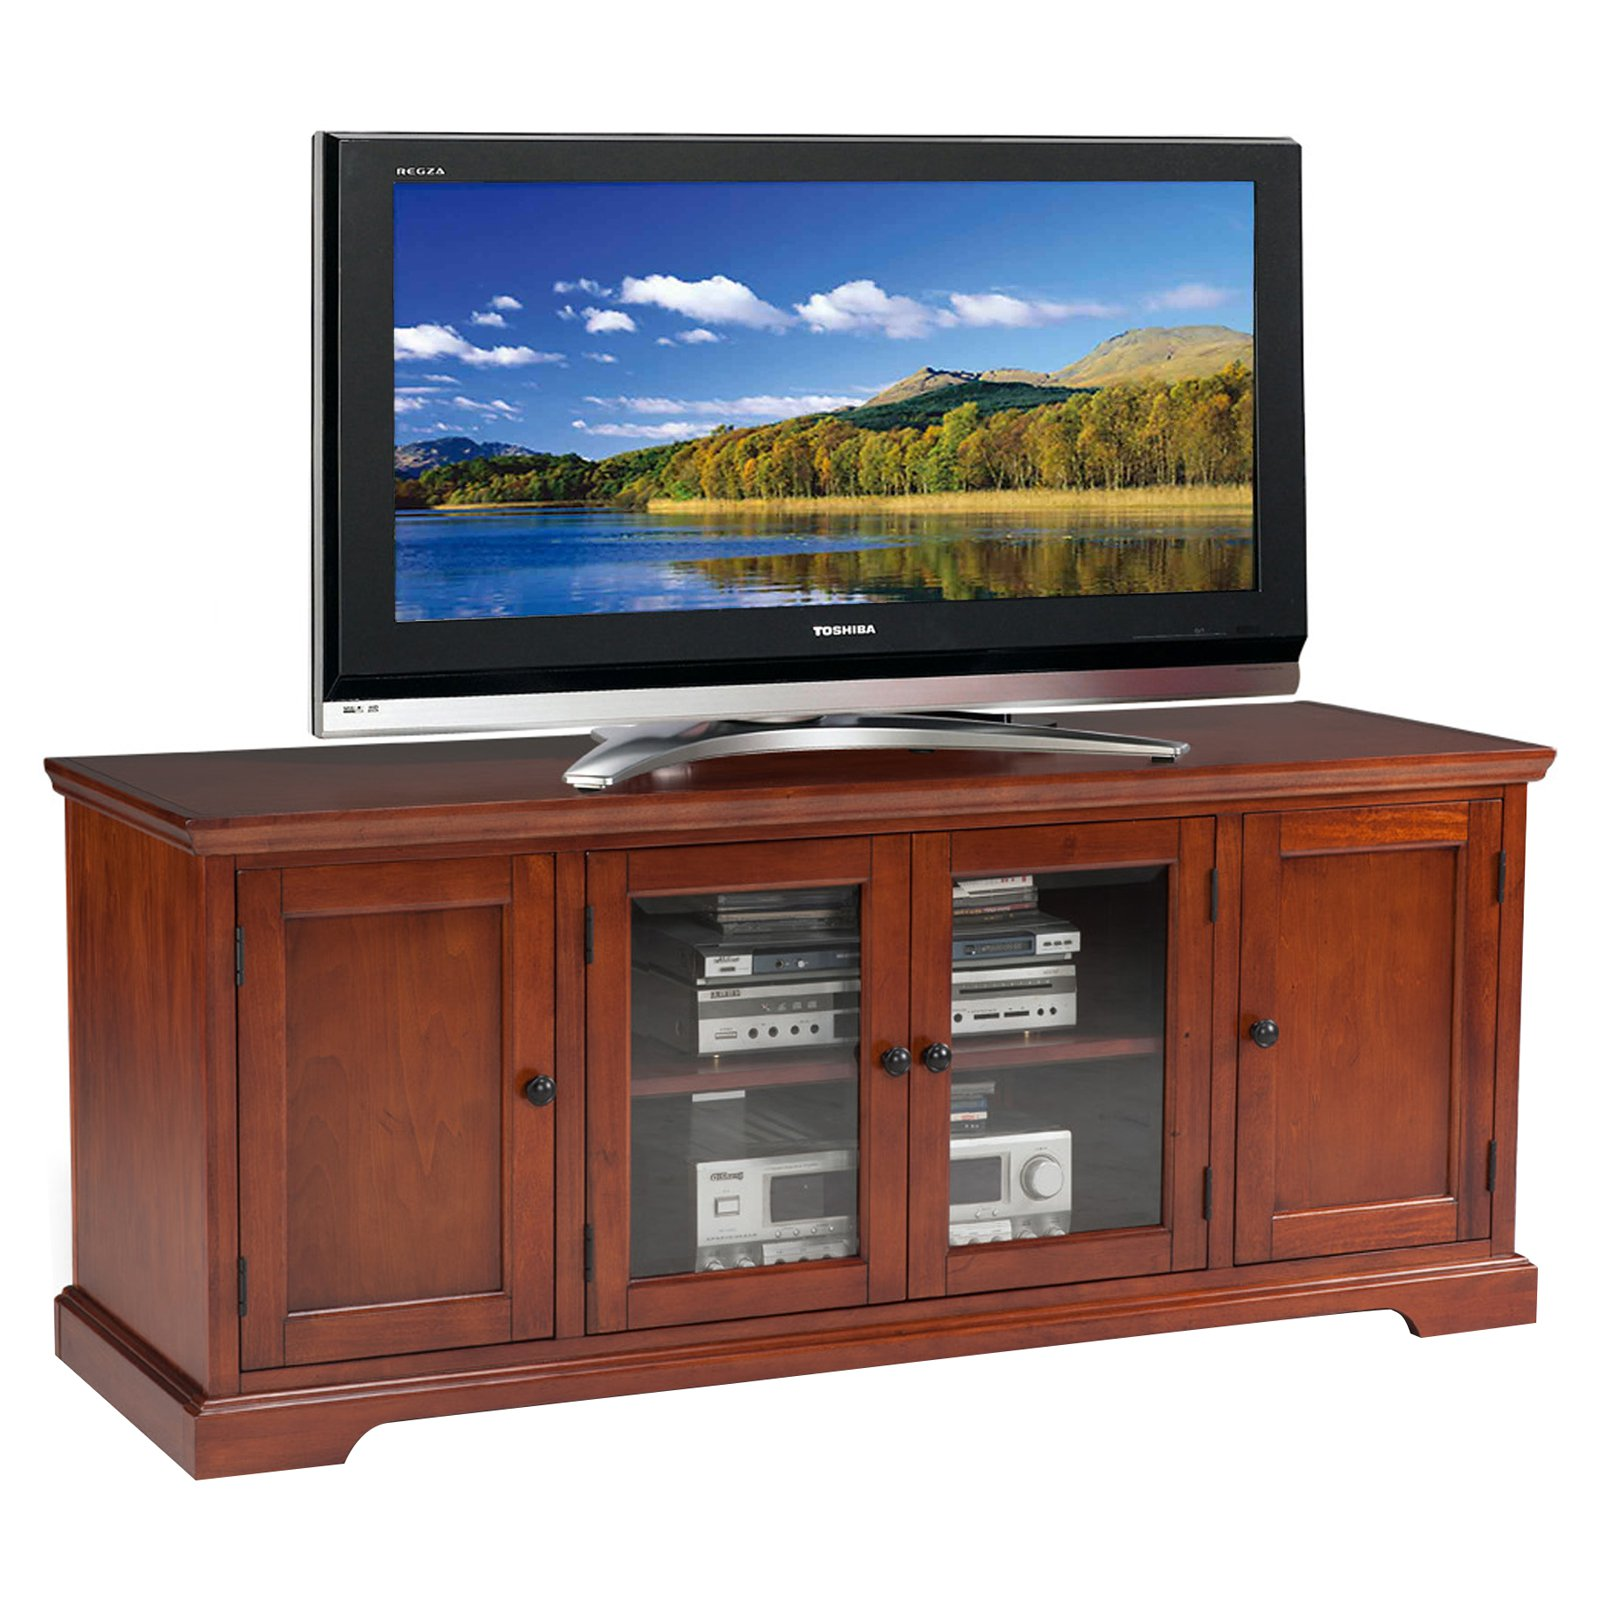 "Leick Home Westwood 60"" TV Stand for TV's up to 60"", Brown Cherry"